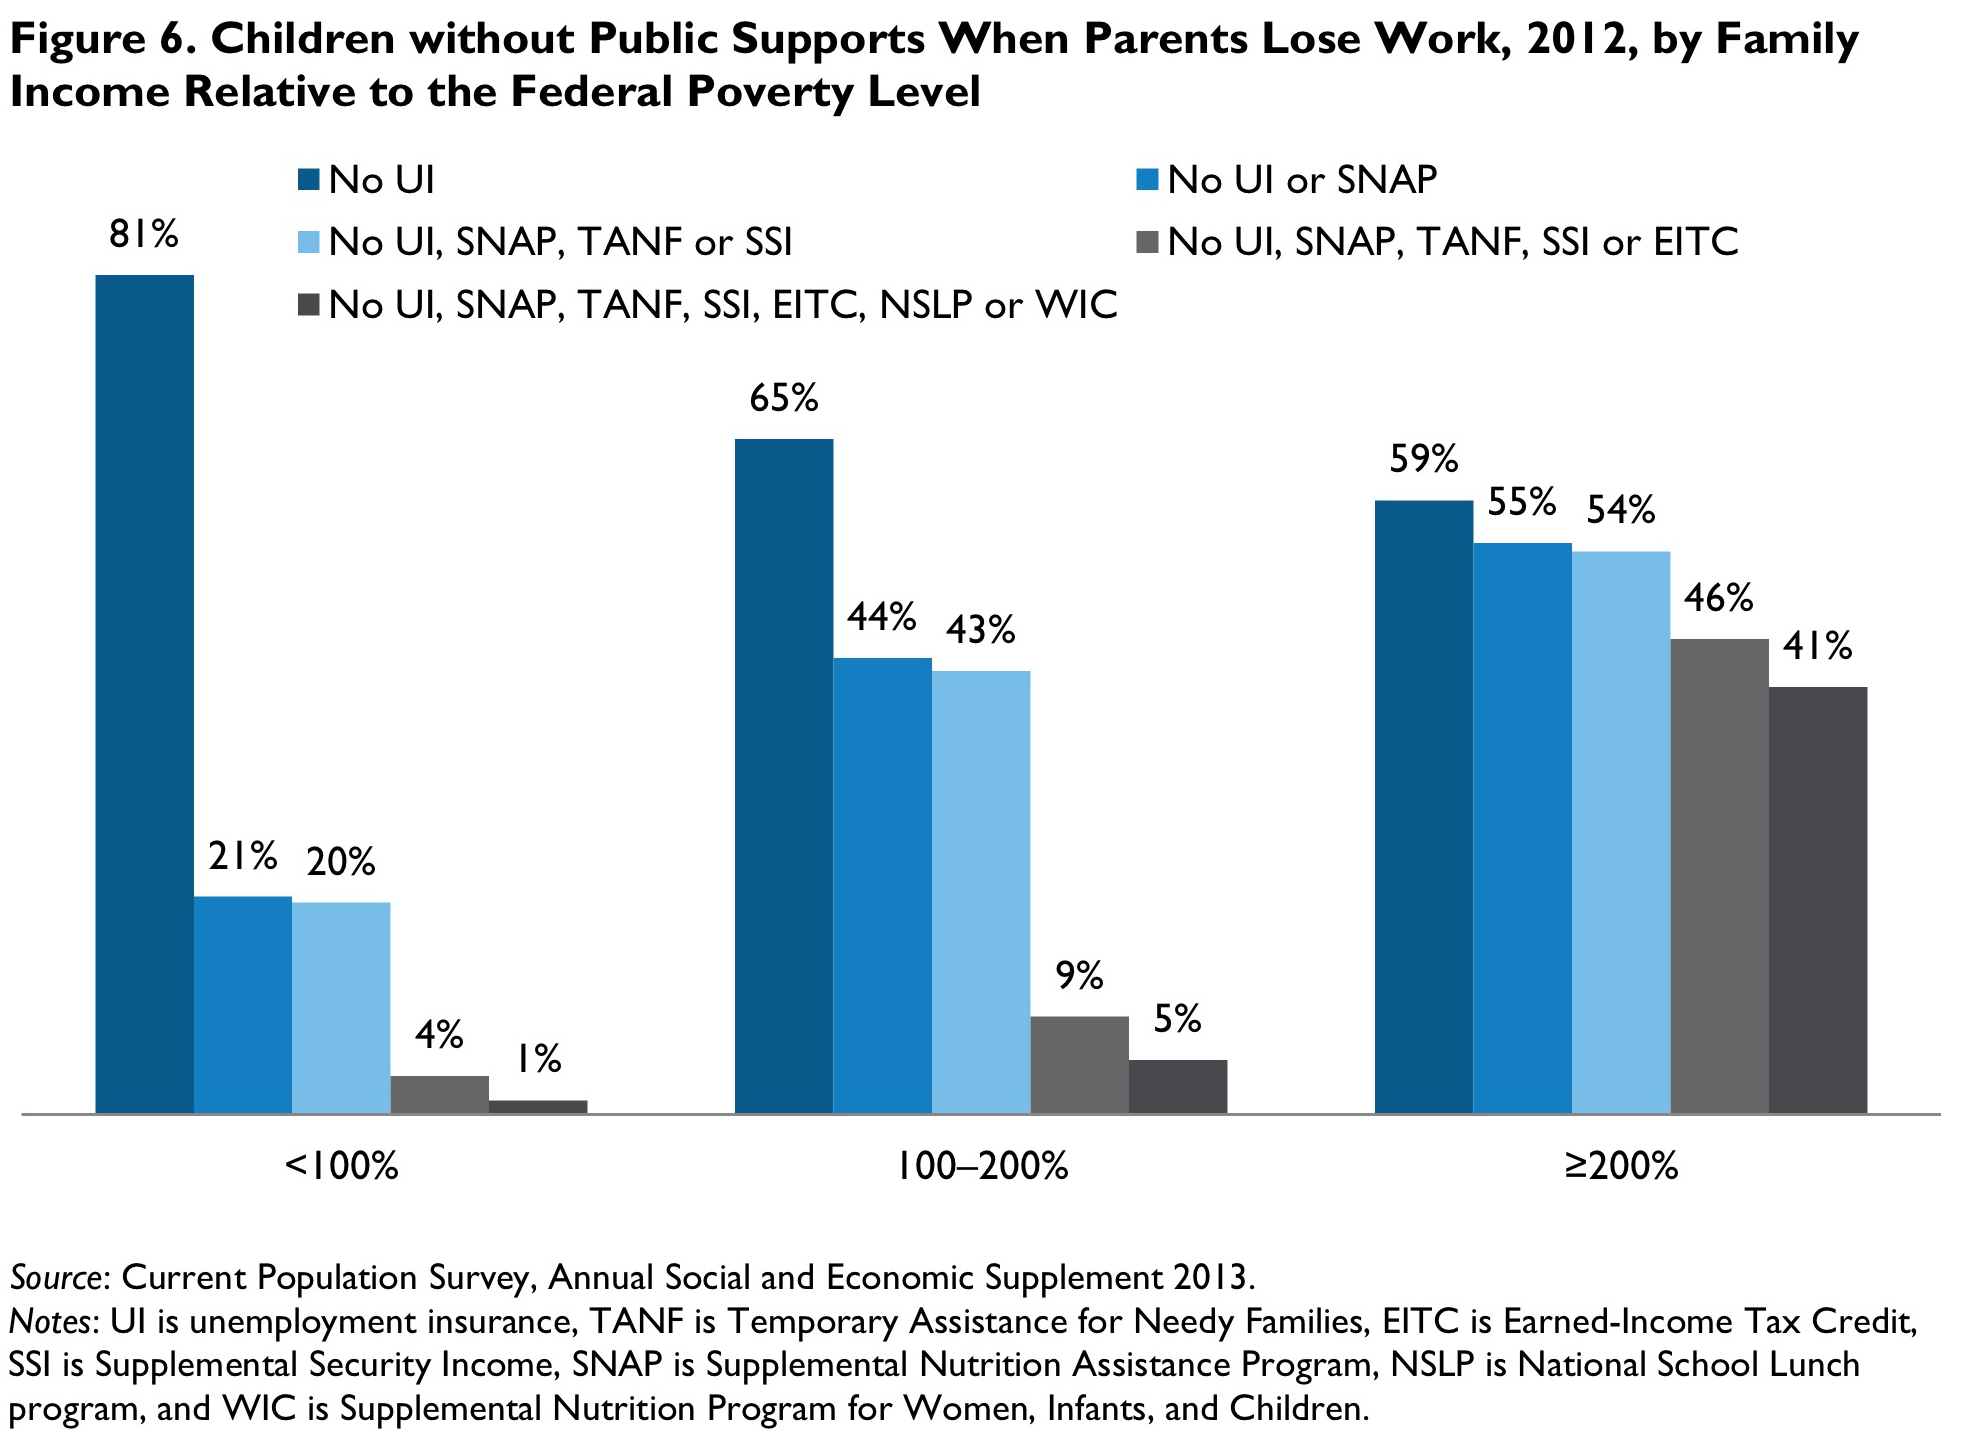 Figure 6. Children without Public Supports When Parents Lose Work, 2012, by Family Income Relative to the Federal Poverty Level